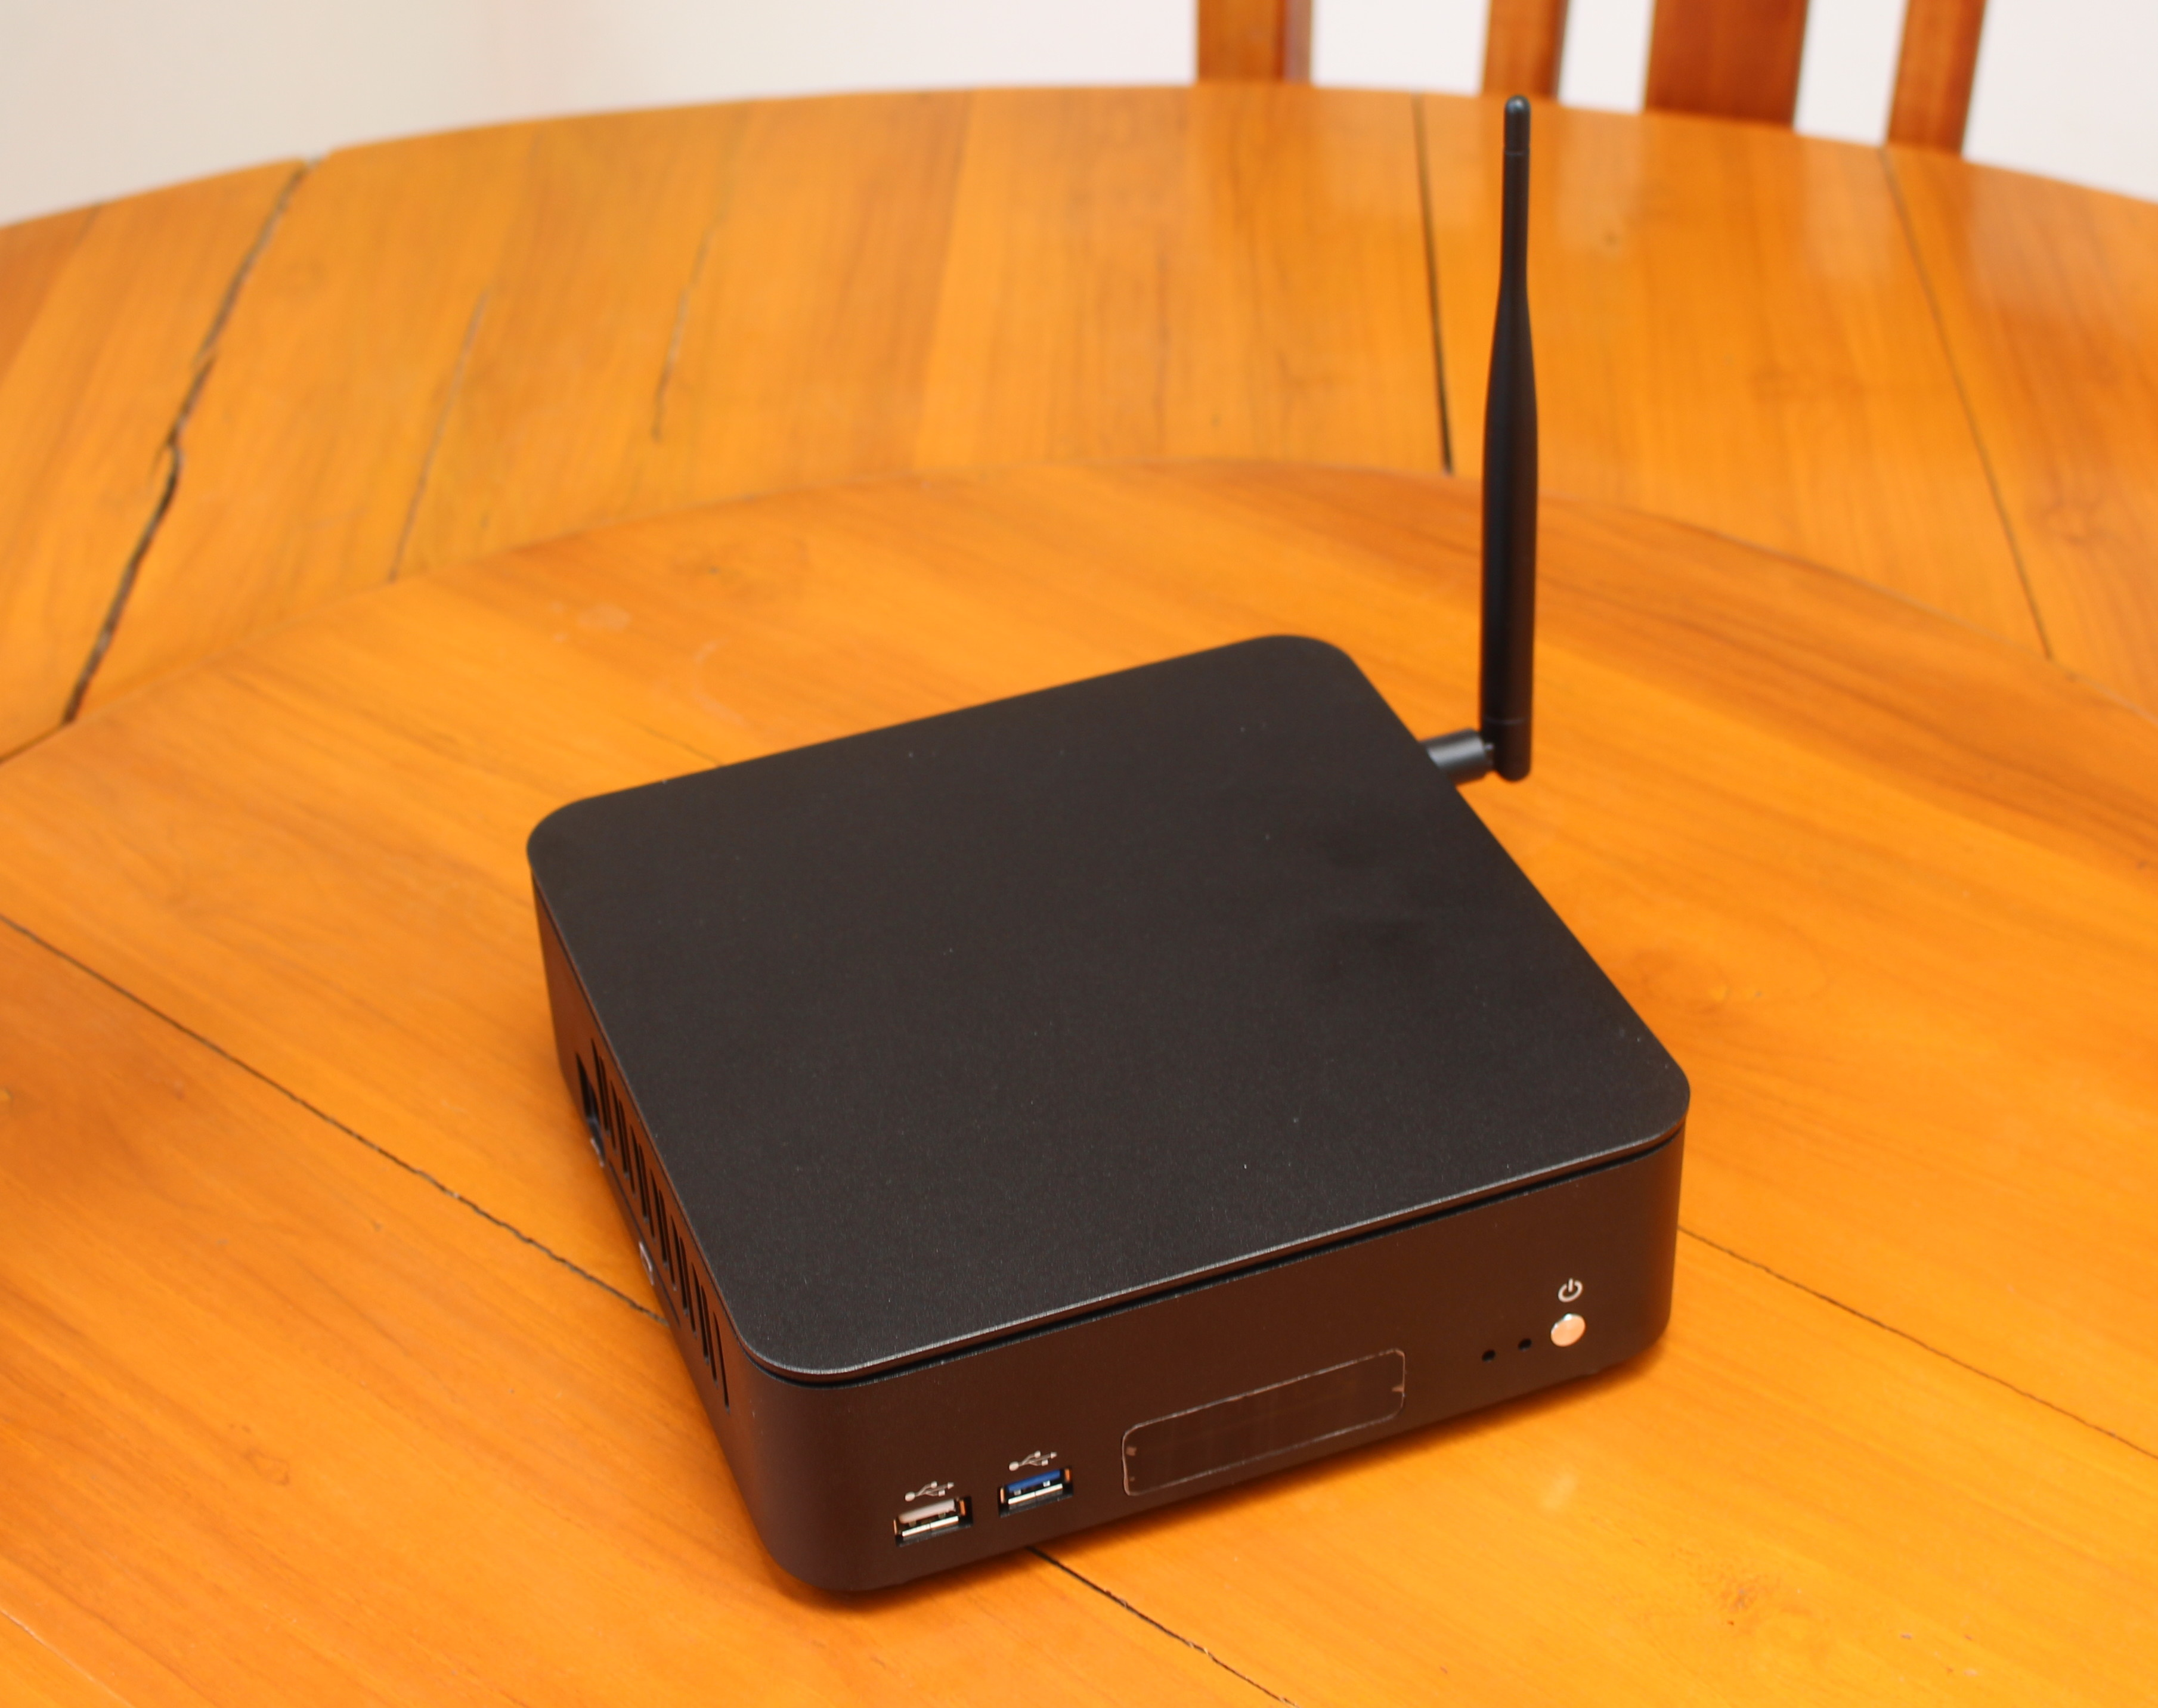 U5 PVR Deluxe Android Set-Top Box Review - Part 1: Specs